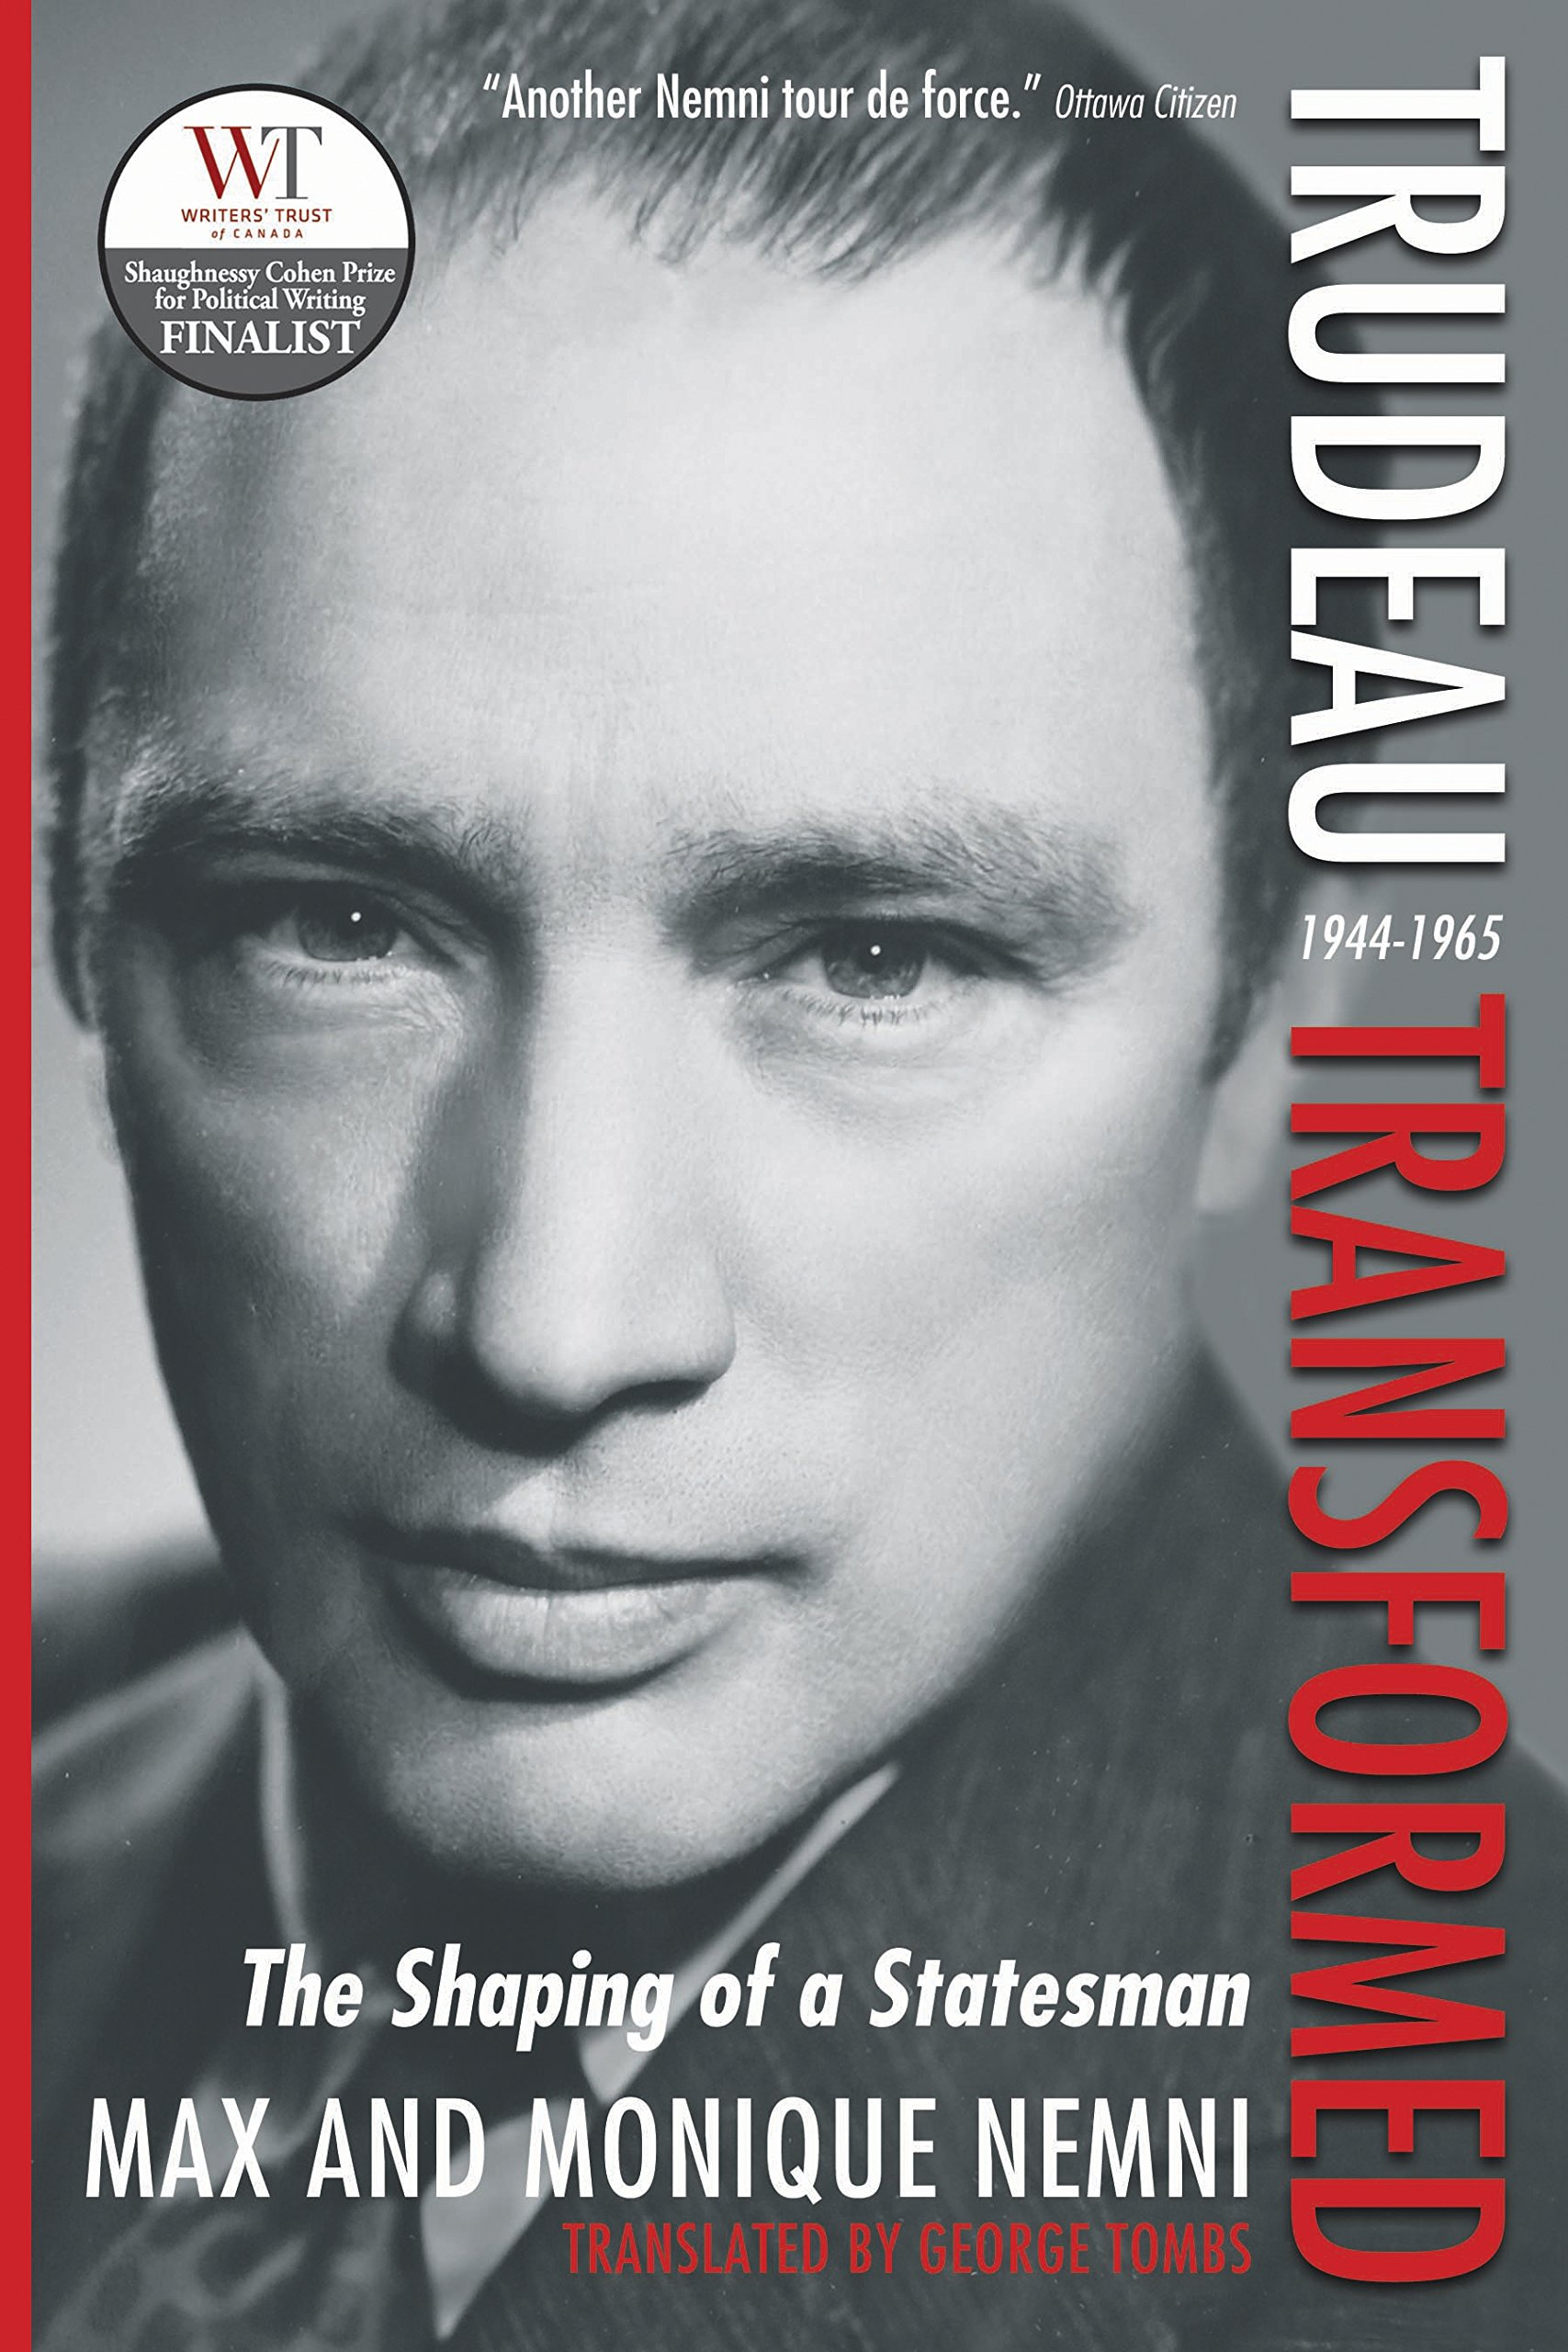 Trudeau Transformed: The Shaping of a Statesman 1944-1965